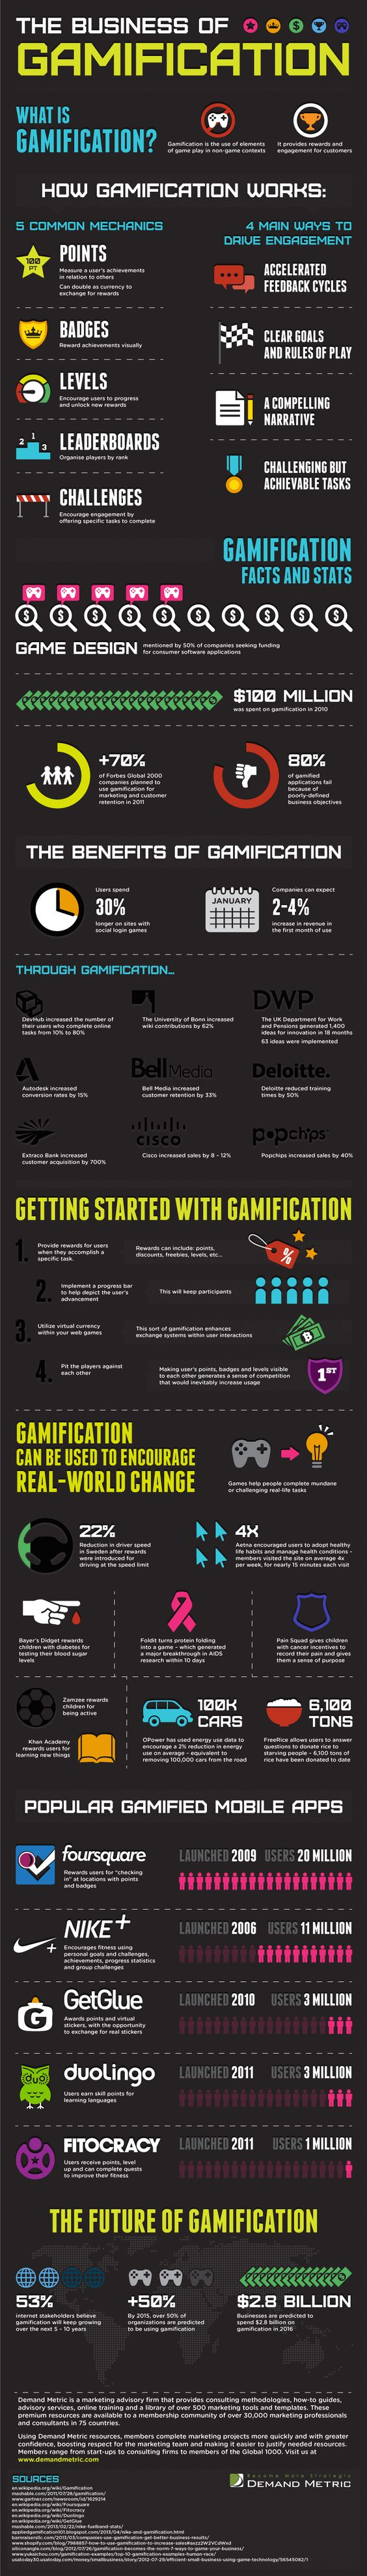 The Business of Gamification Link on Game Mechanics: http://www.oecd.org/edu/ceri/39414829.pdf